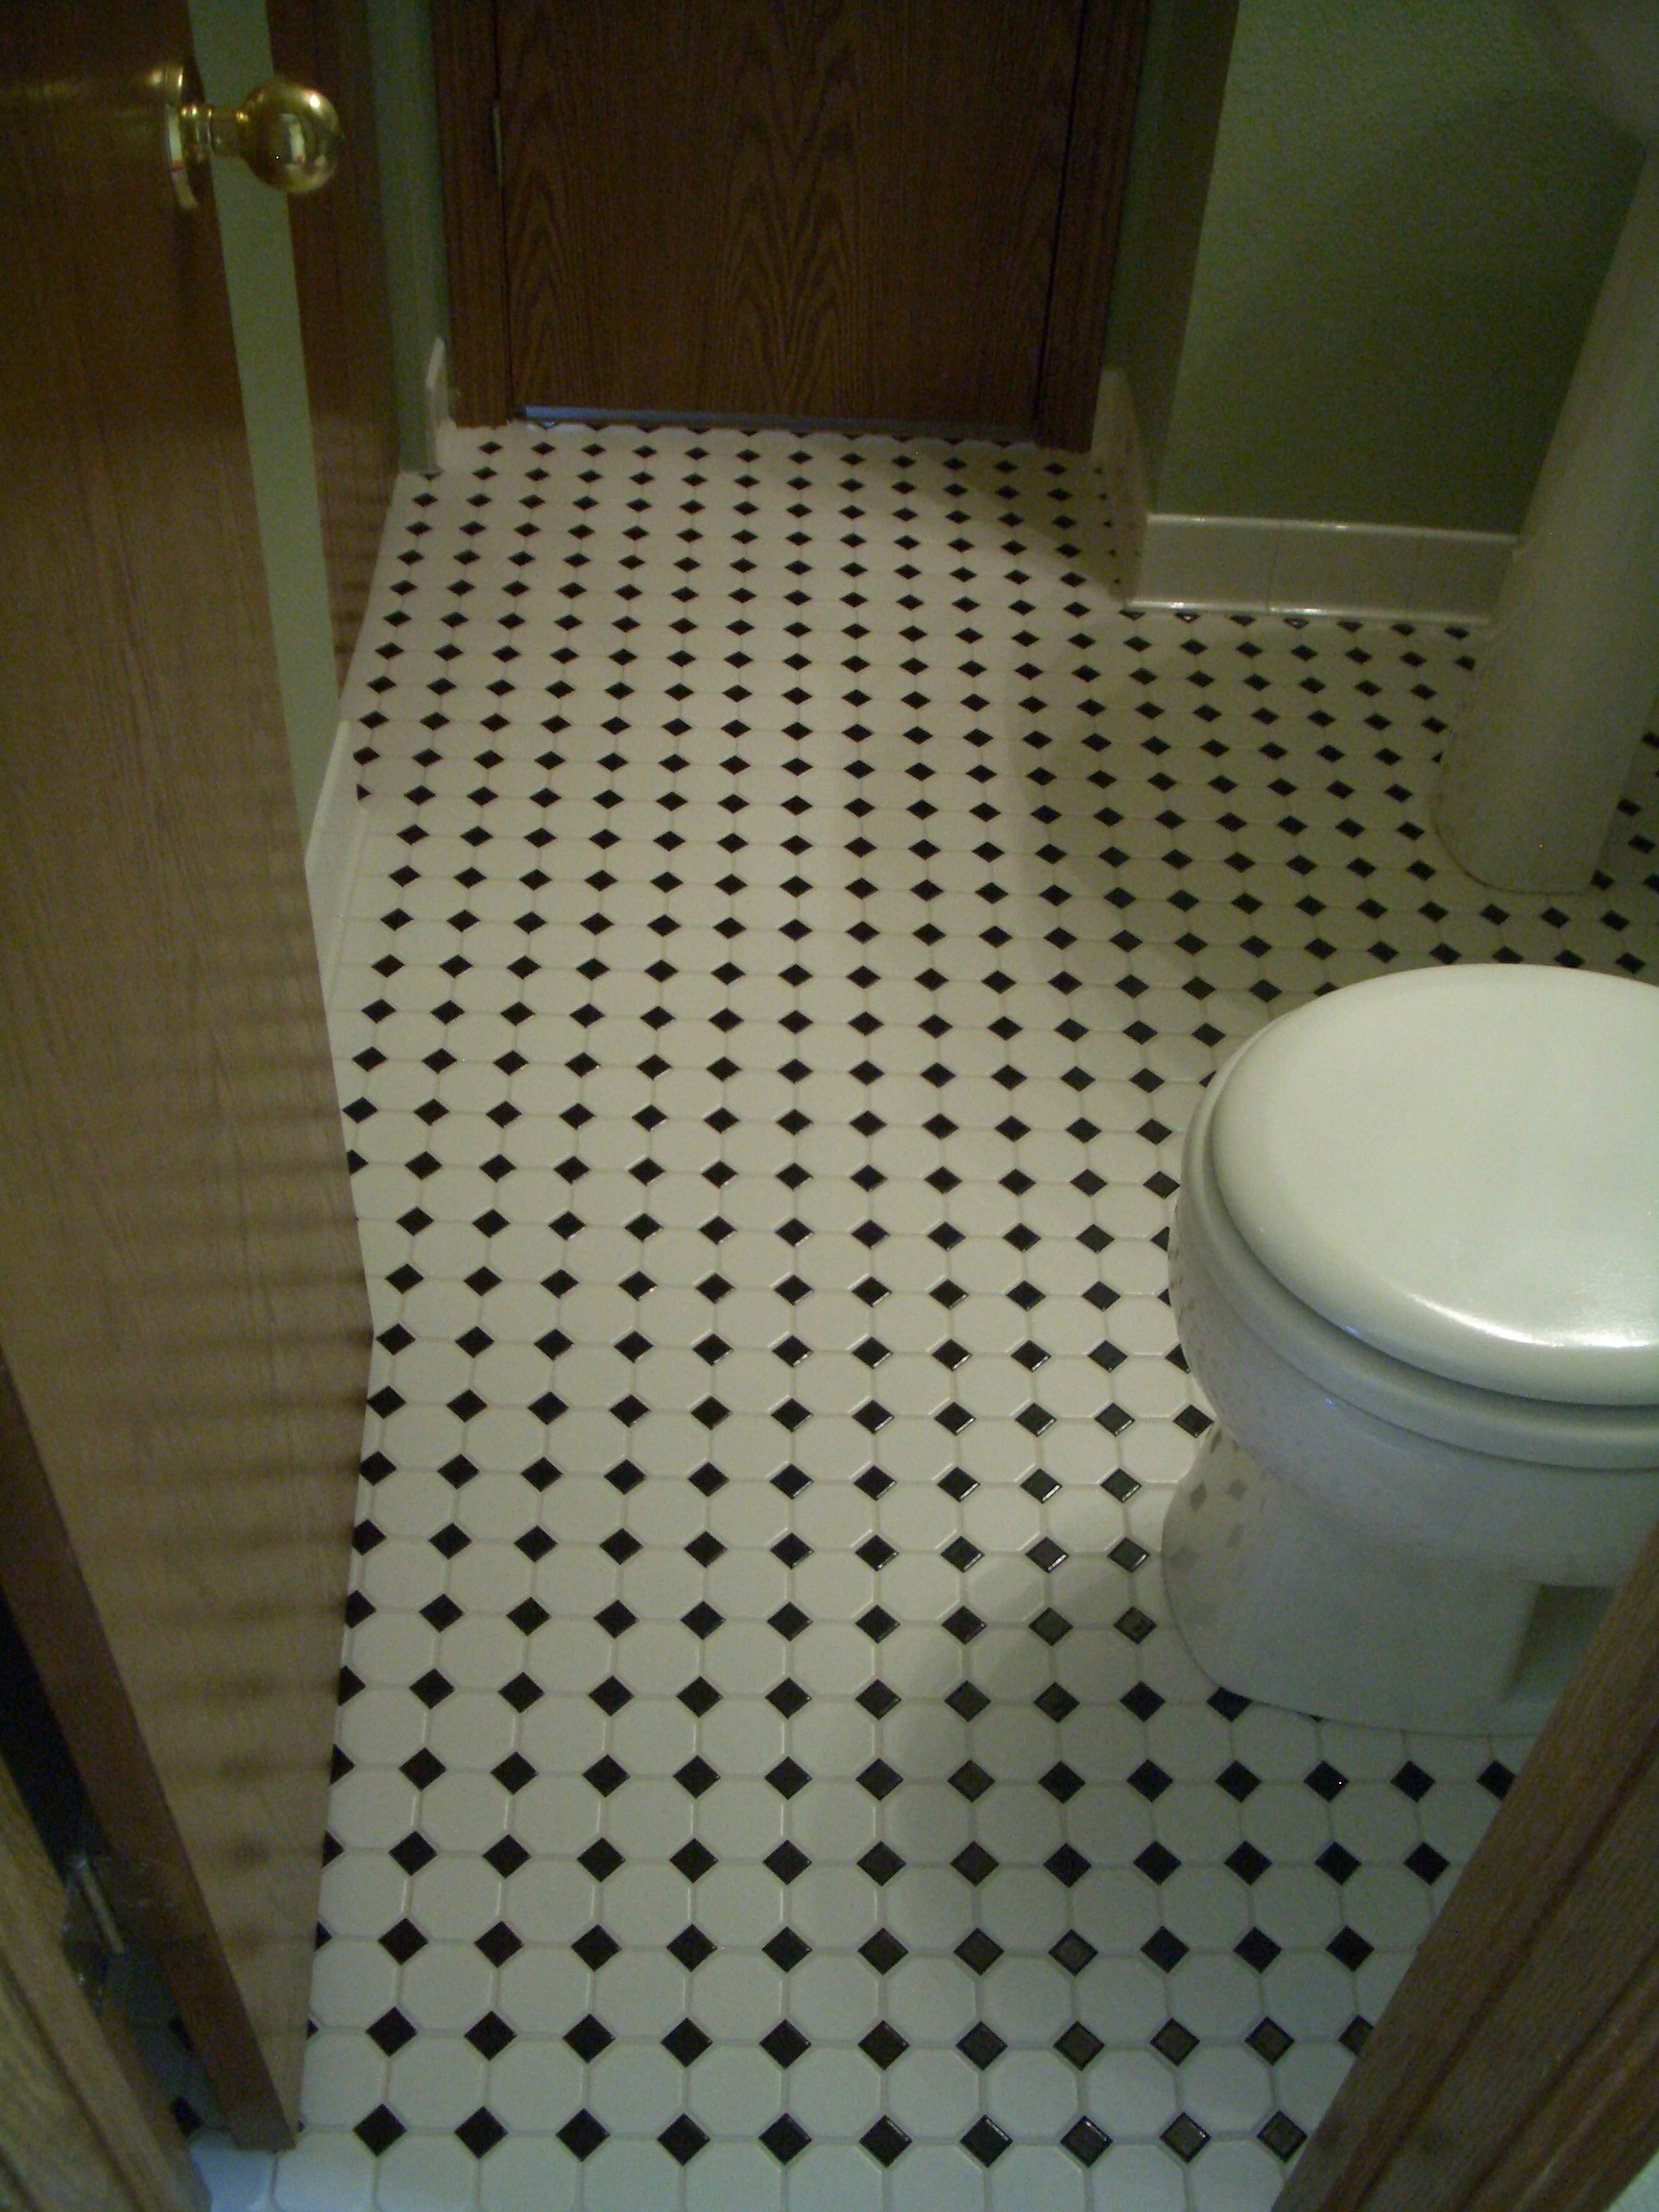 Octagonal Mosaic Tile Floors With Black